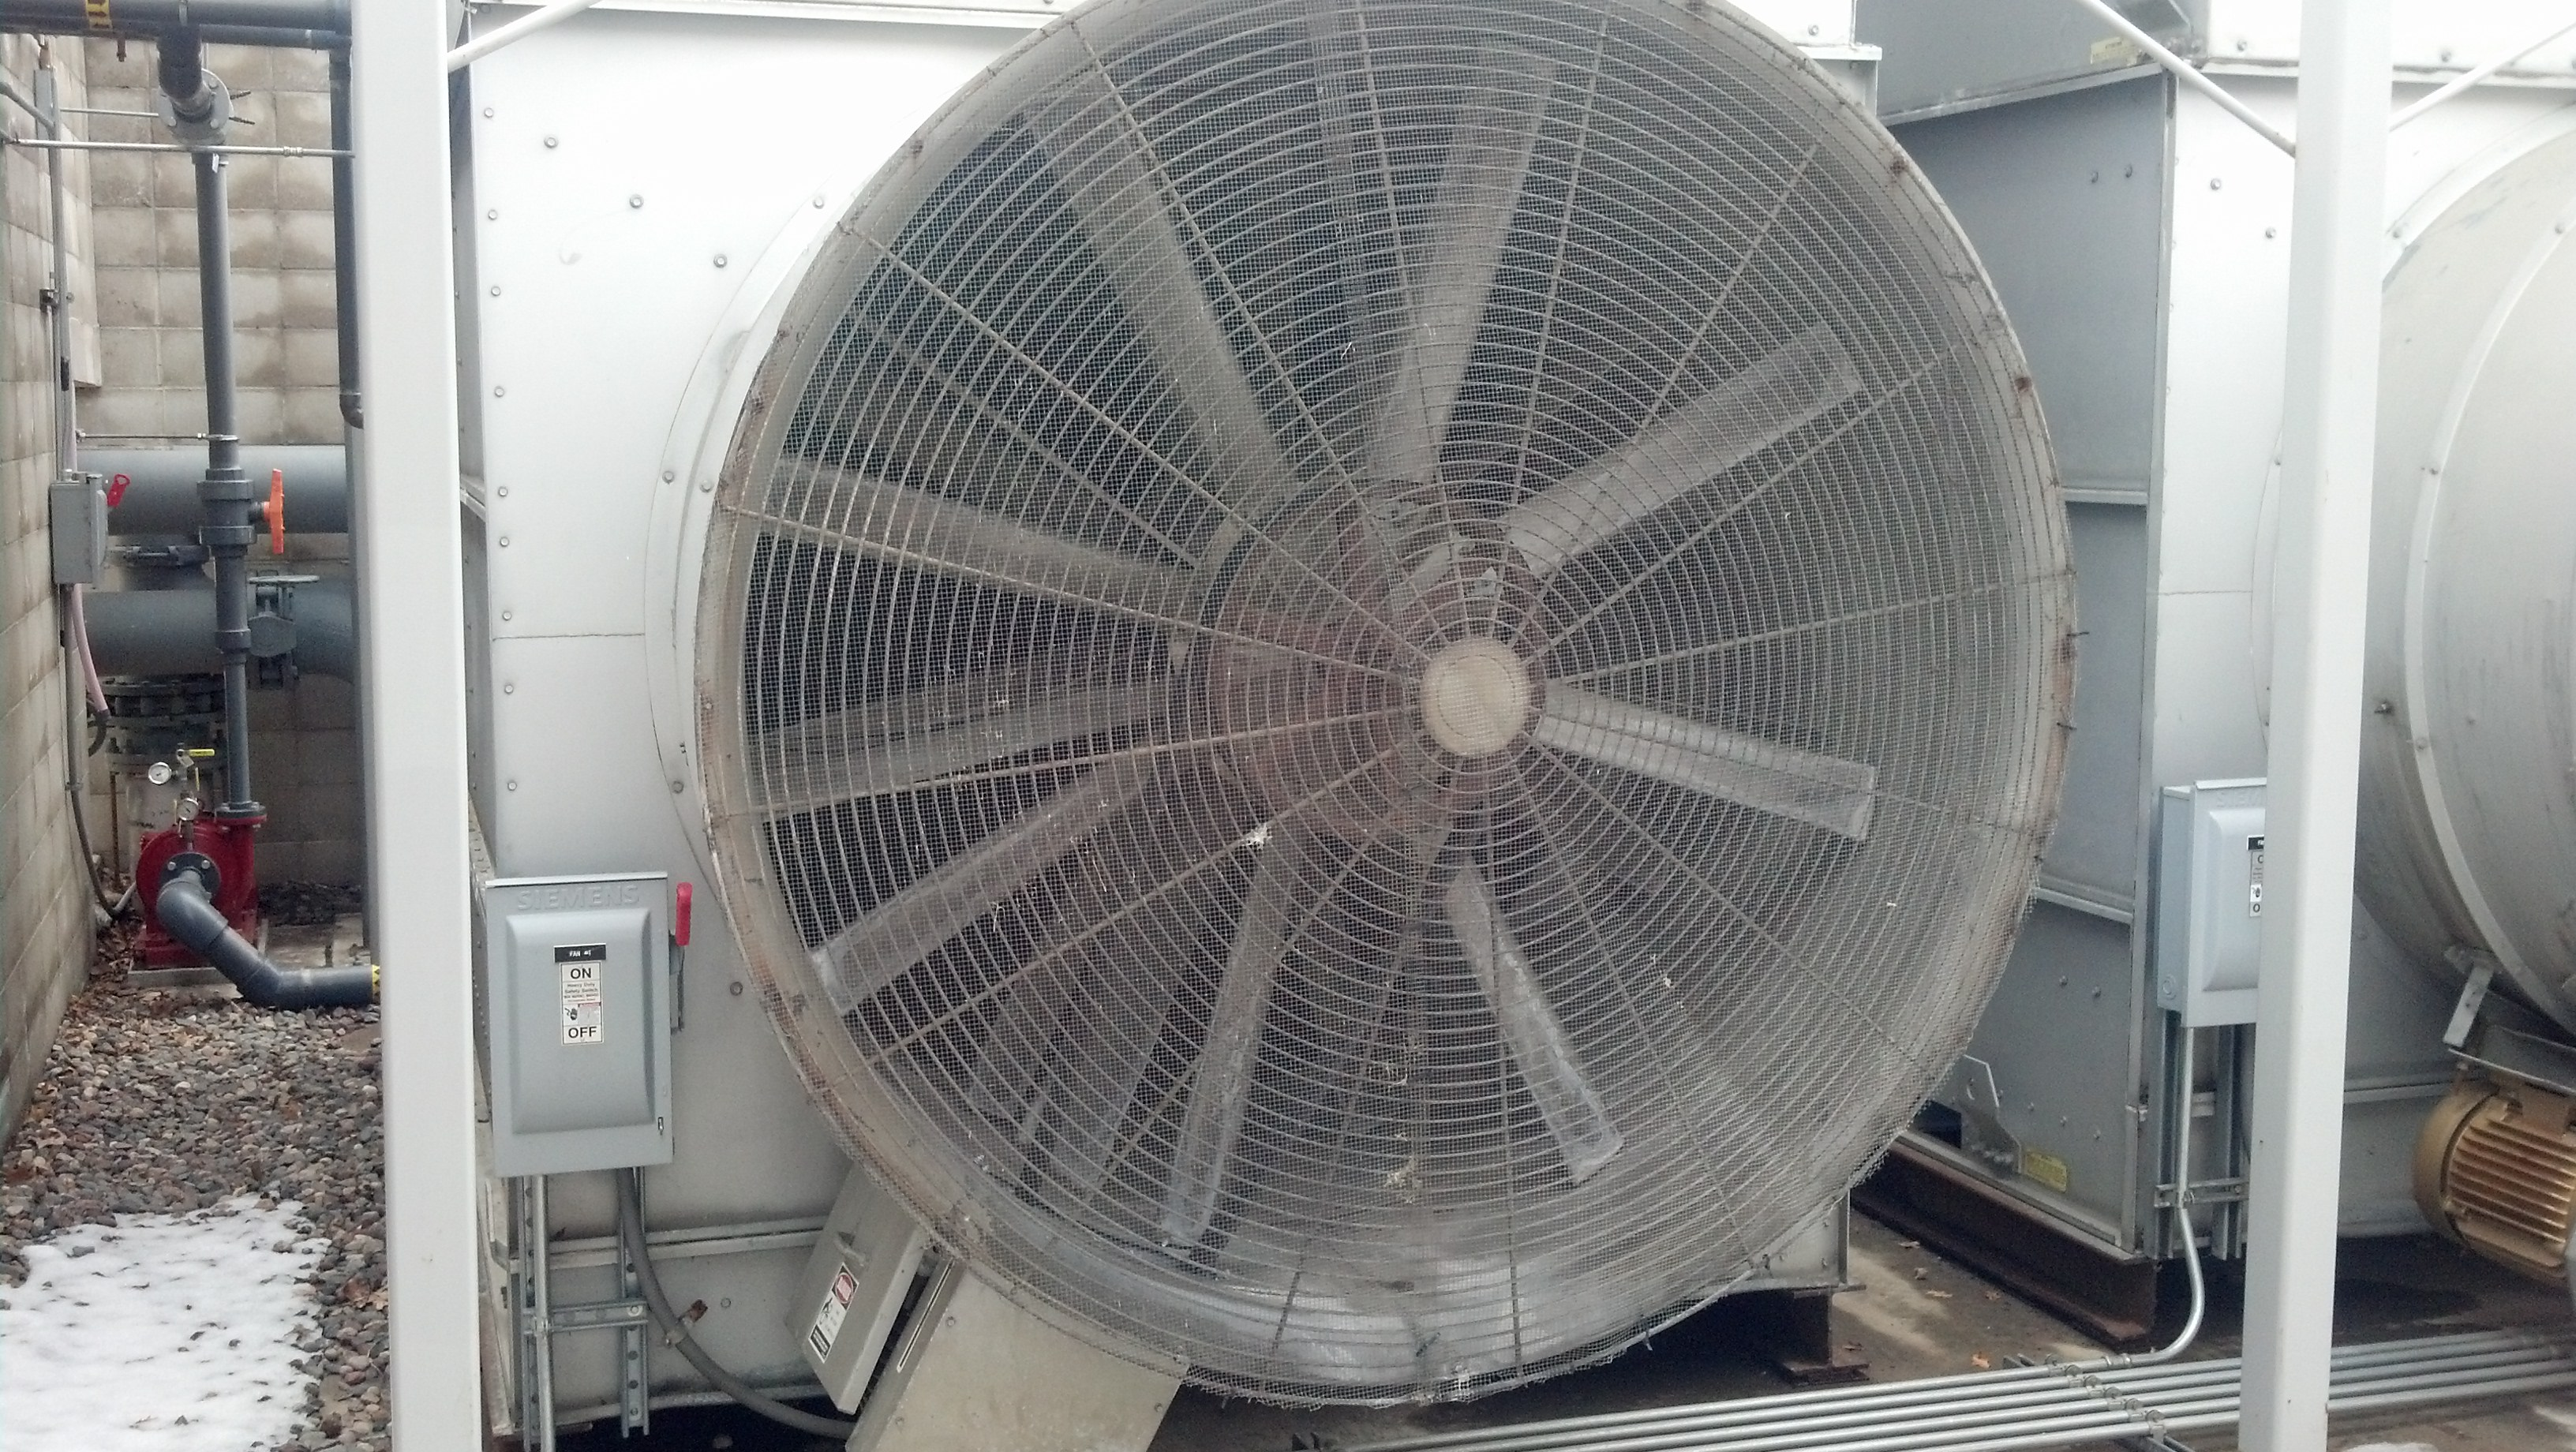 bac-cooling-tower-intake-fan